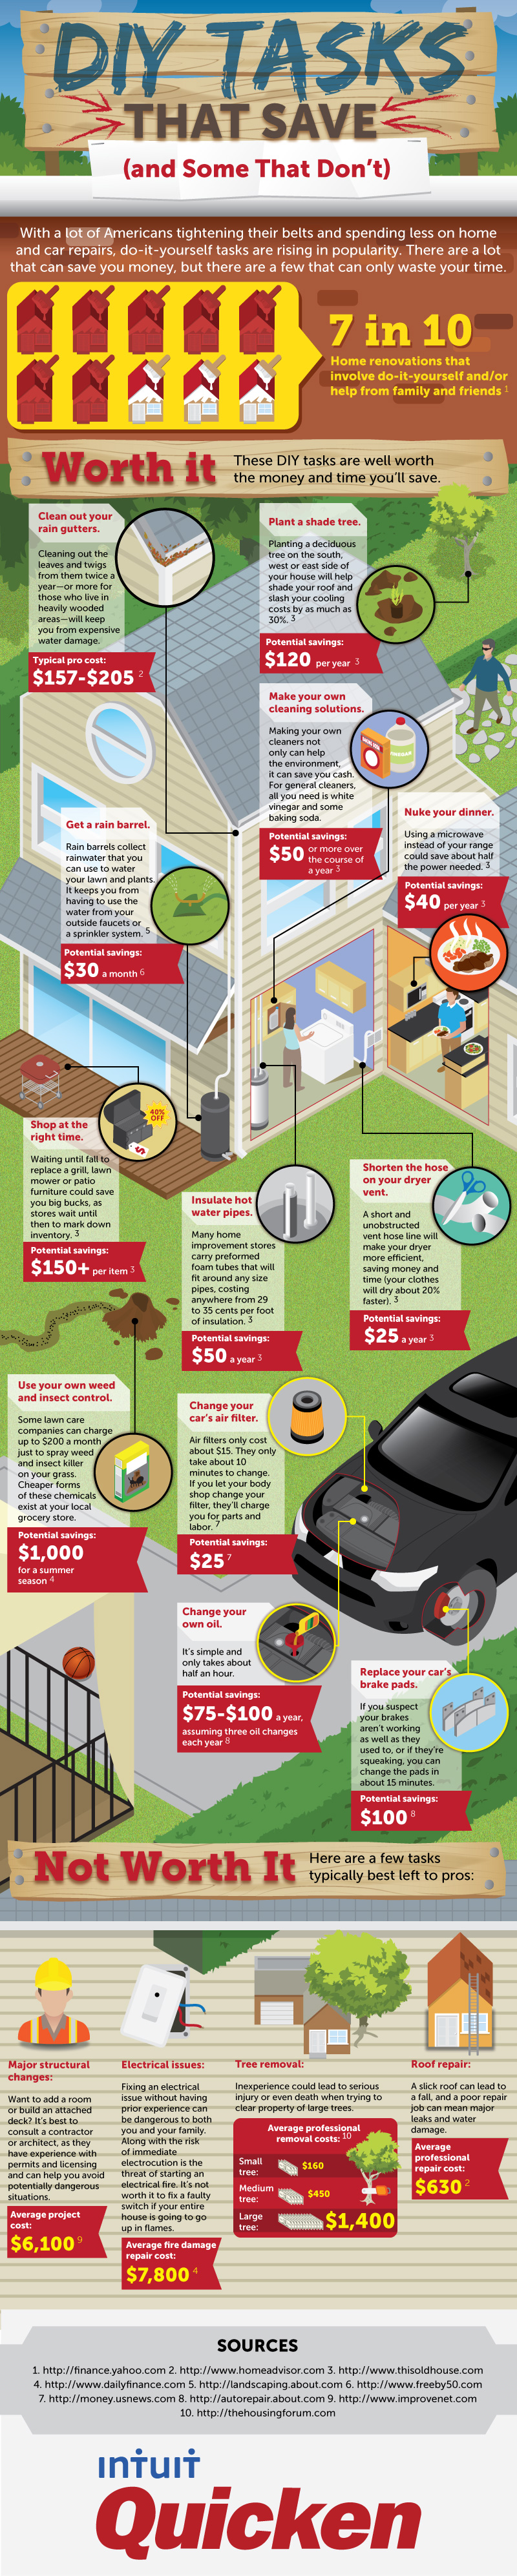 DIY-Tasks-that-Save-infographic